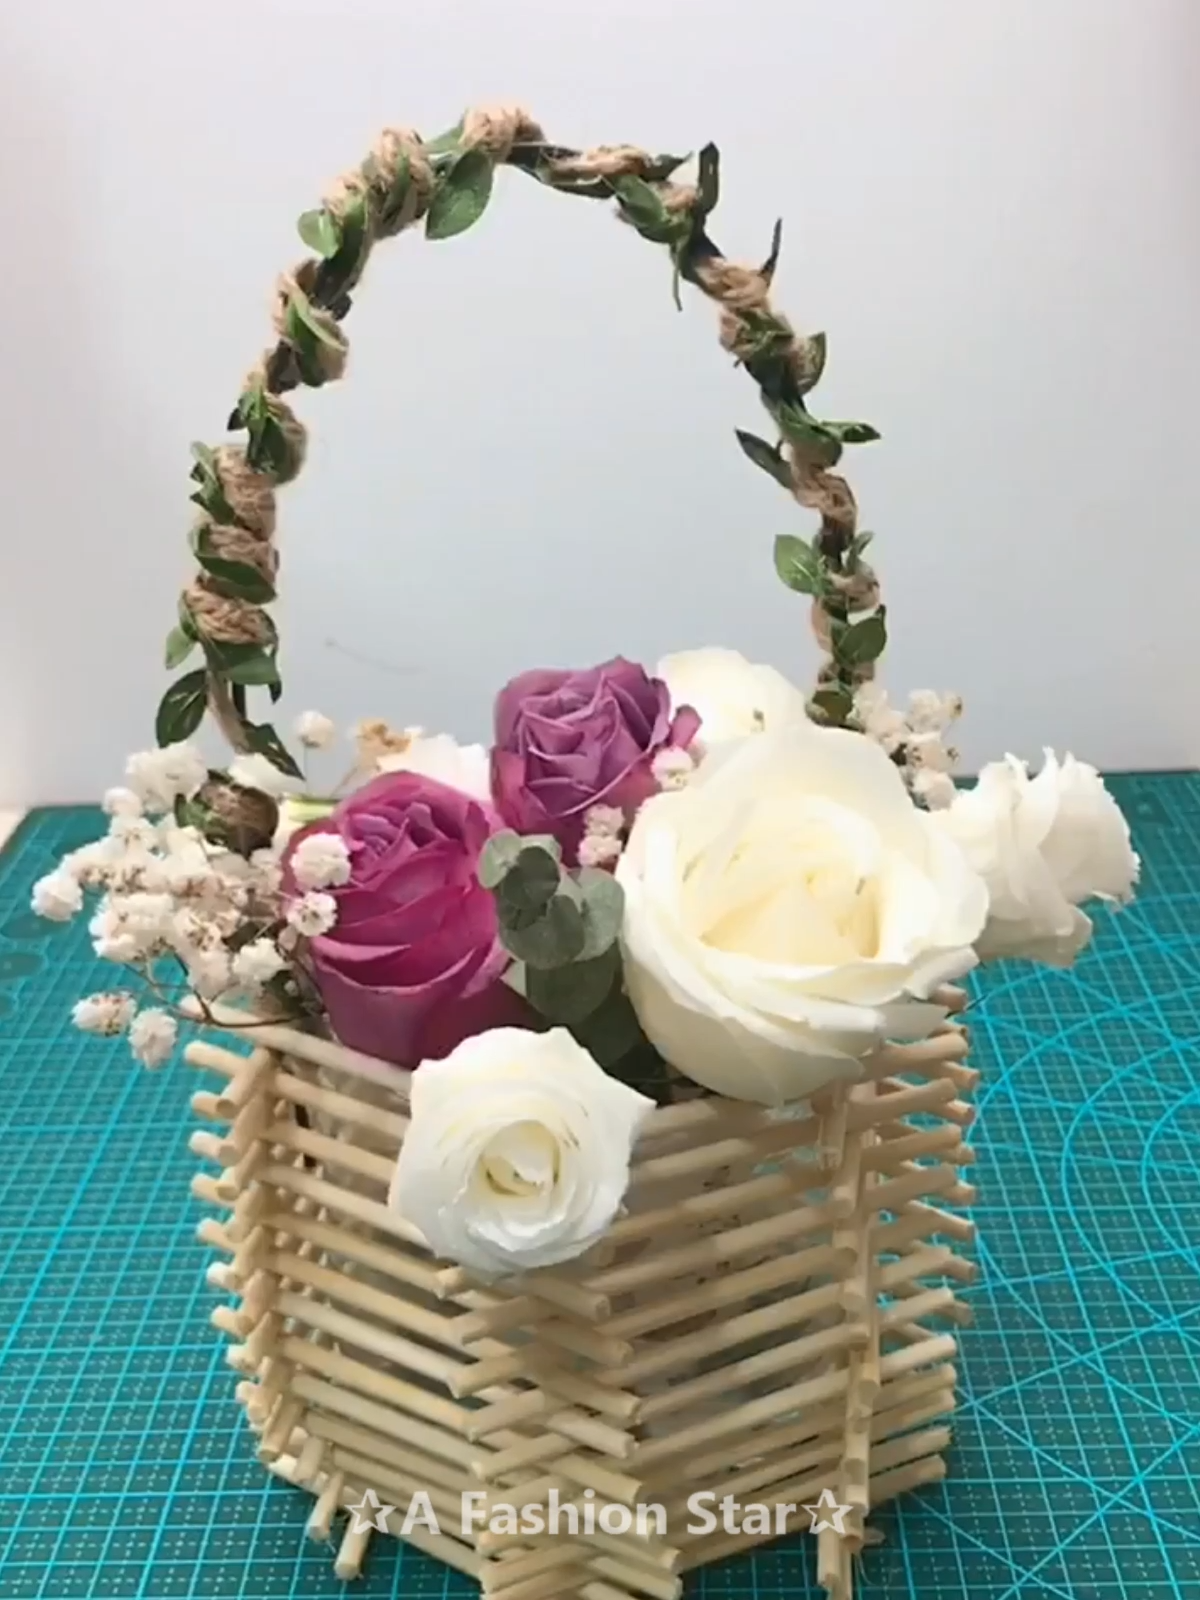 Get Latest DIY Projects from afashionstar.com